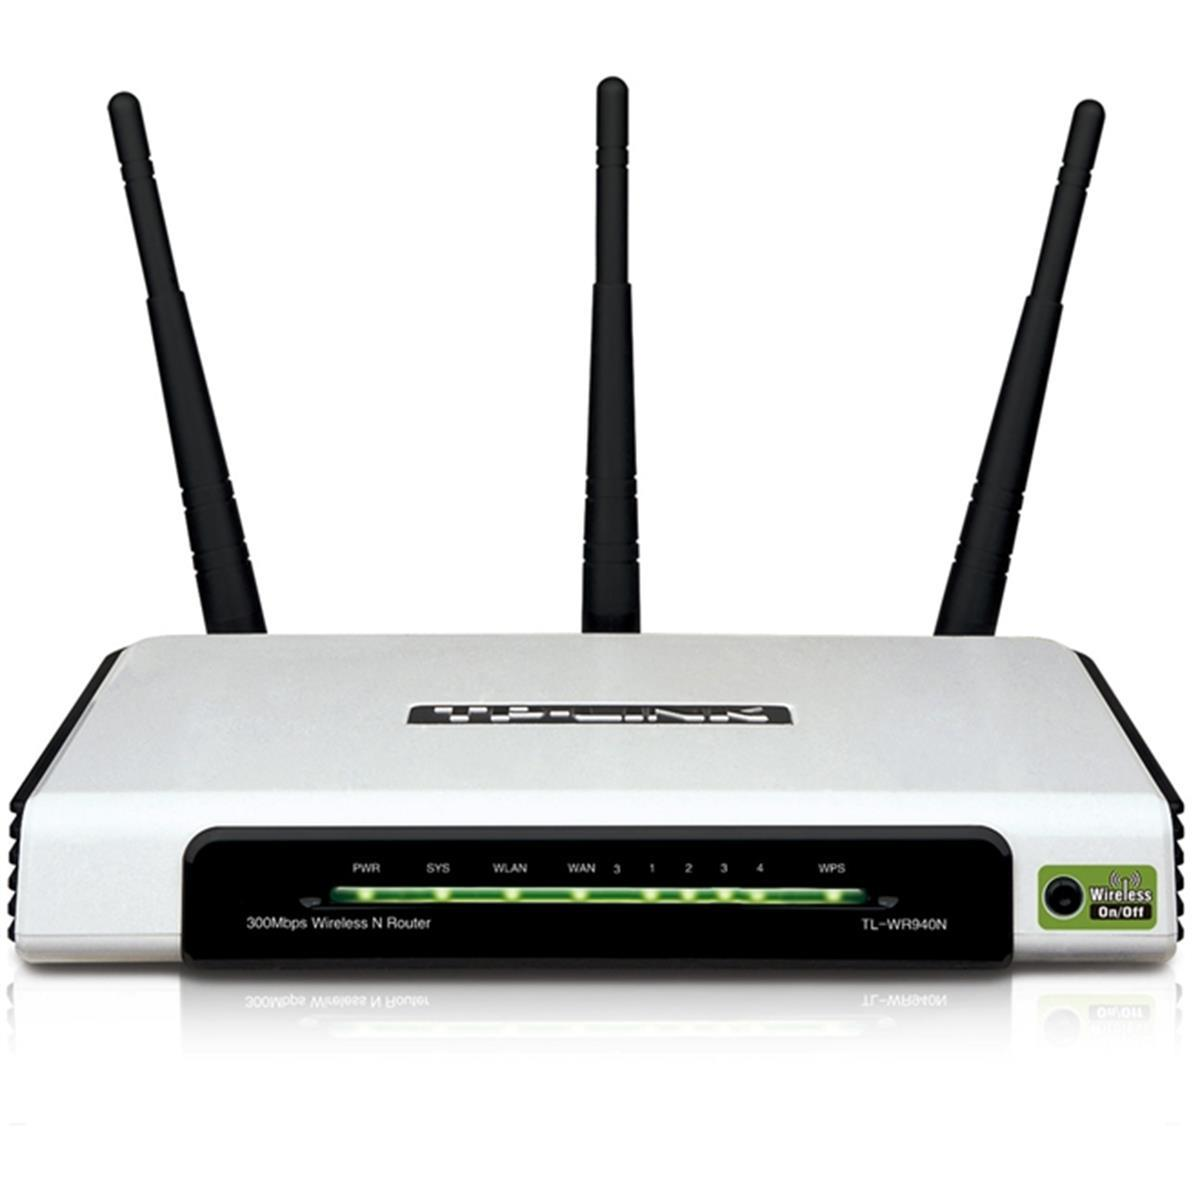 Roteador Wireless N 300Mbps 3 Antenas Wifi Tp - Link